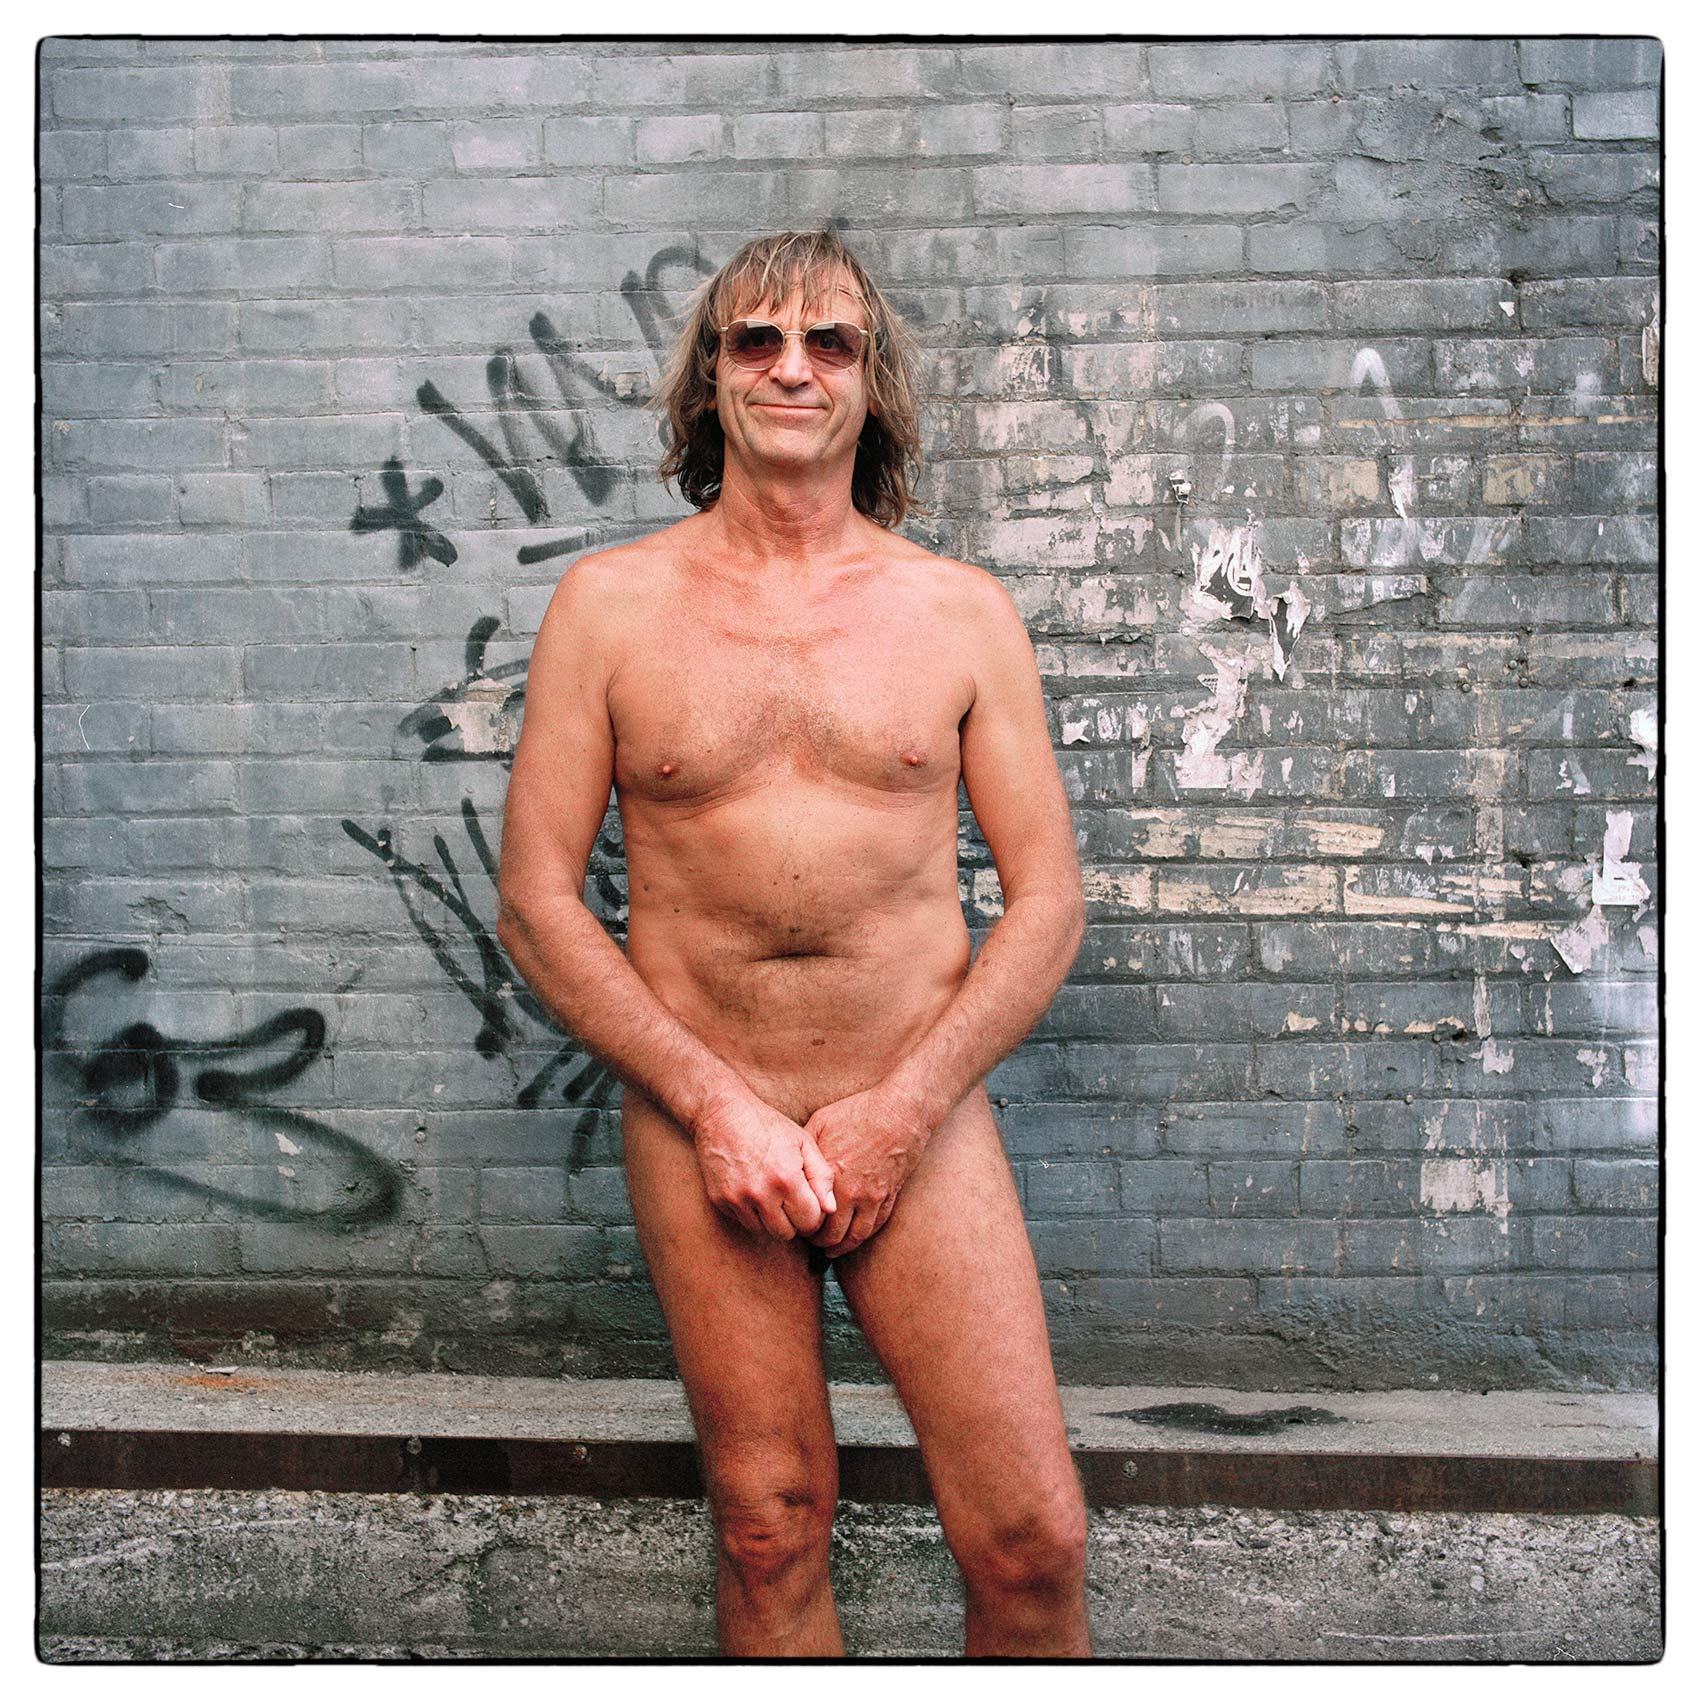 a-man-stands-naked-covering-his-genitals-for-a-photography-portrait-at-the-toronto-gay-pride-parade